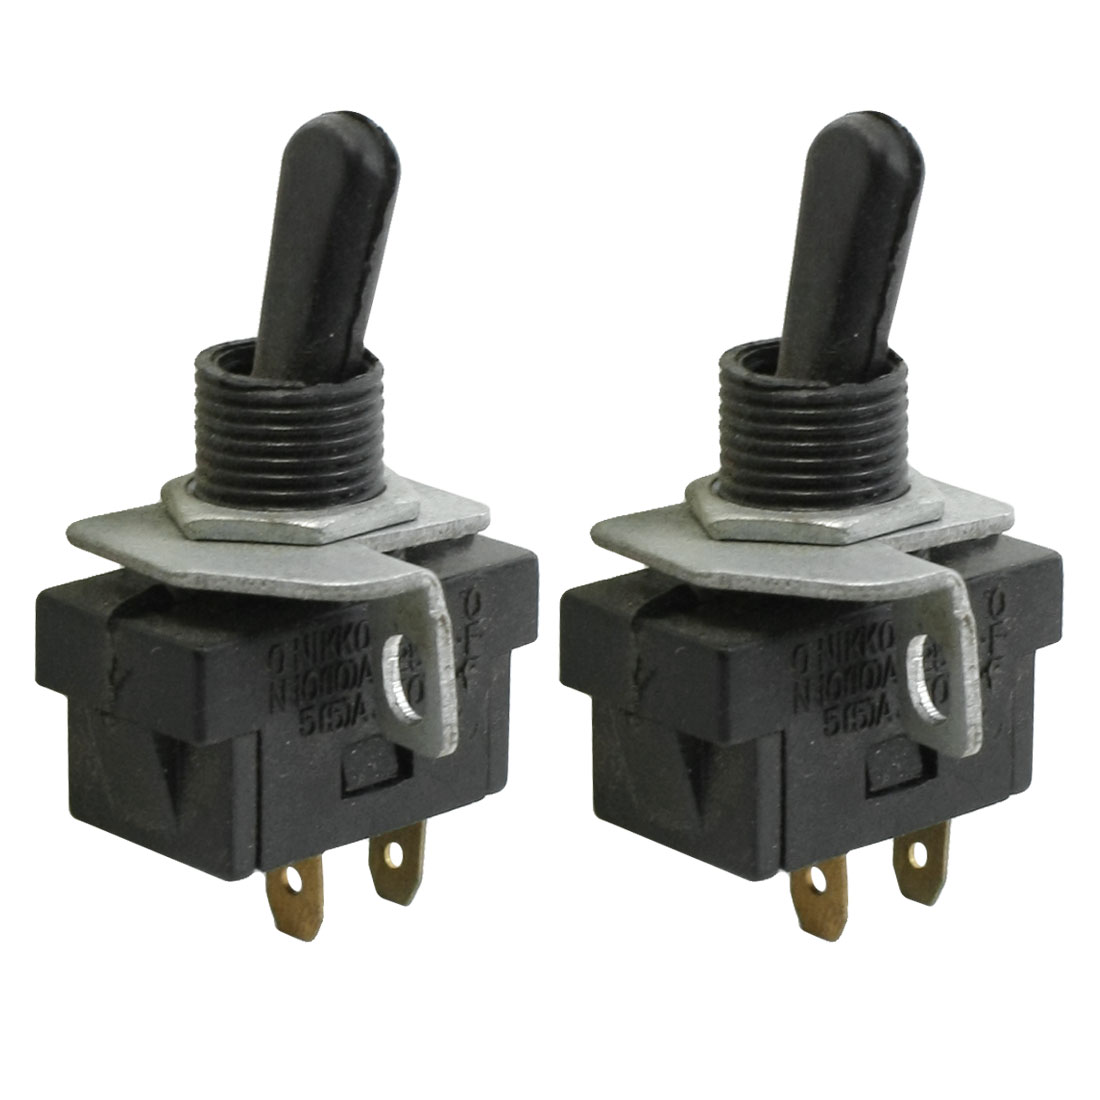 2 Terminals ON-OFF SPST N/O Toggle Switch 5A 250VAC 10A 125VAC